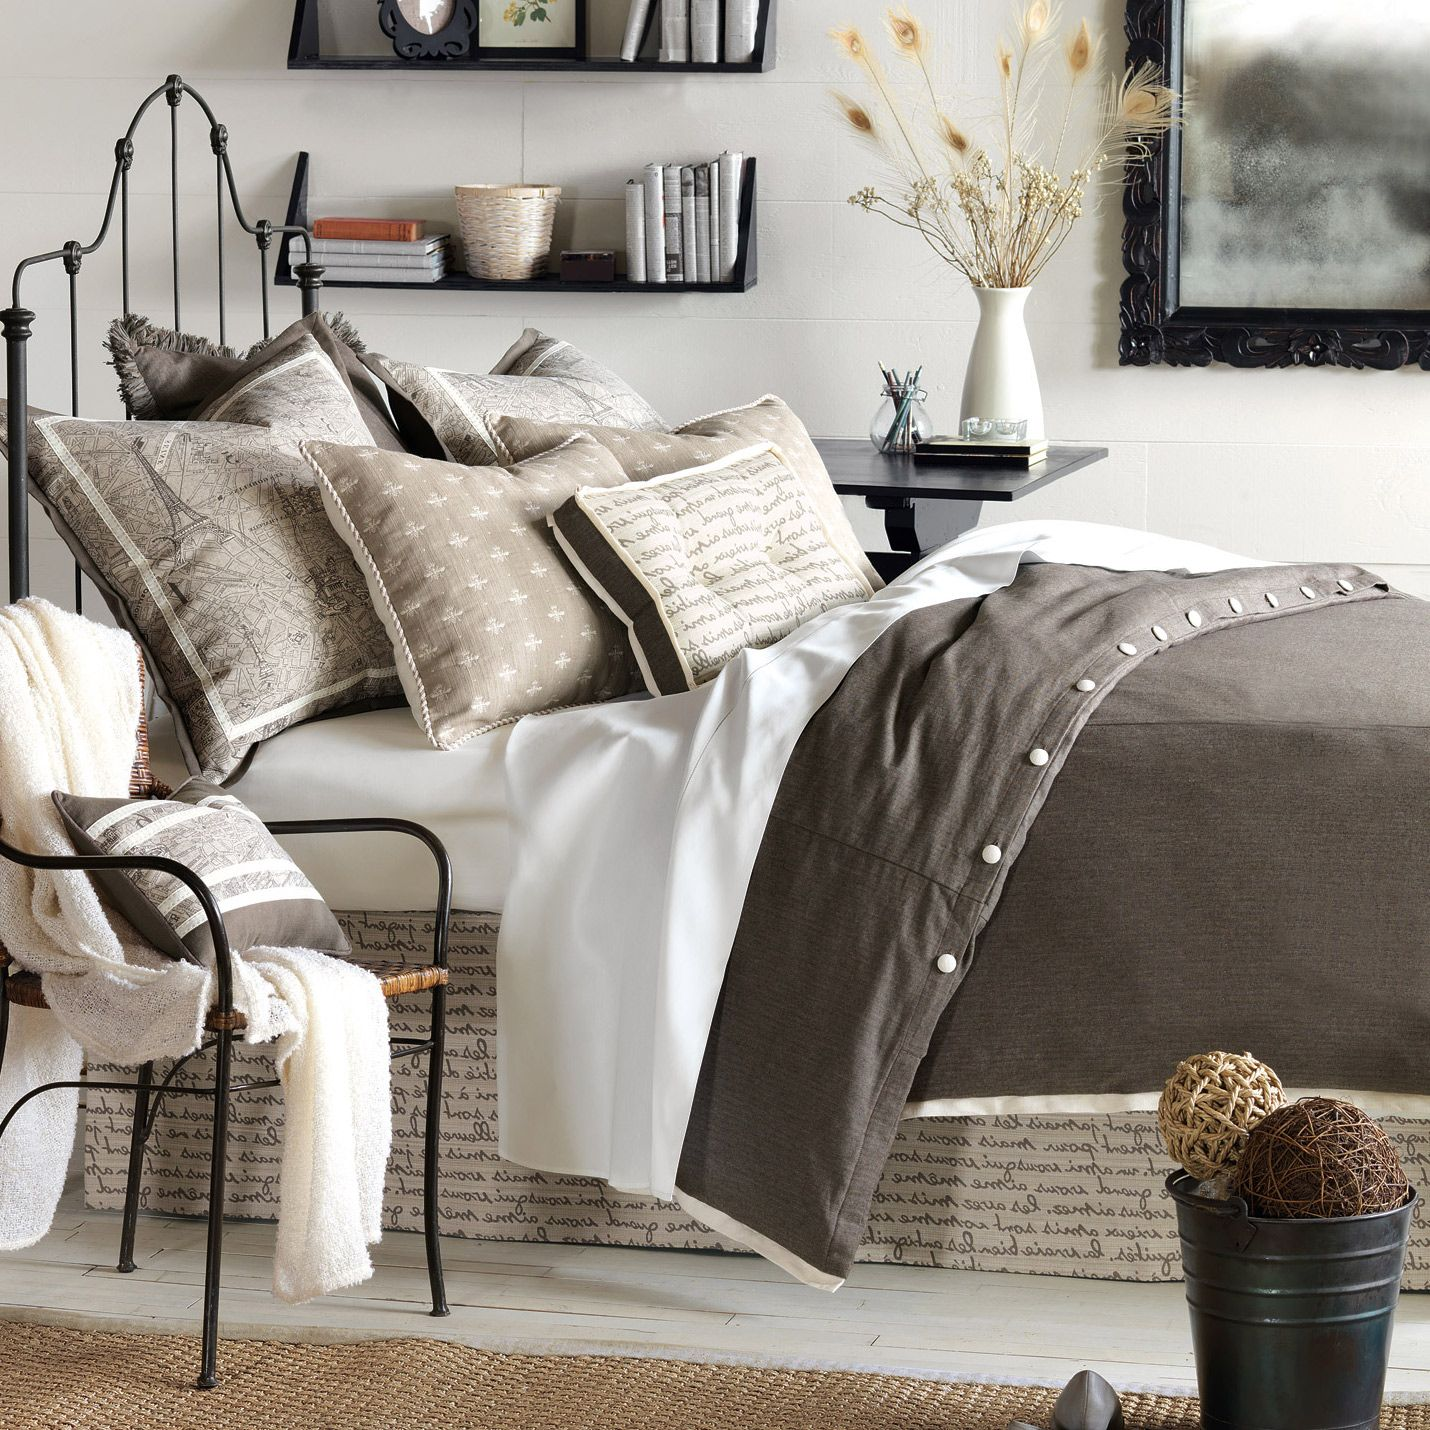 Daphne bedsetmaster bedroom?   Comes in flint Charcoal or Trompe Mocha  Interesting curtain panels to complete ensemble.